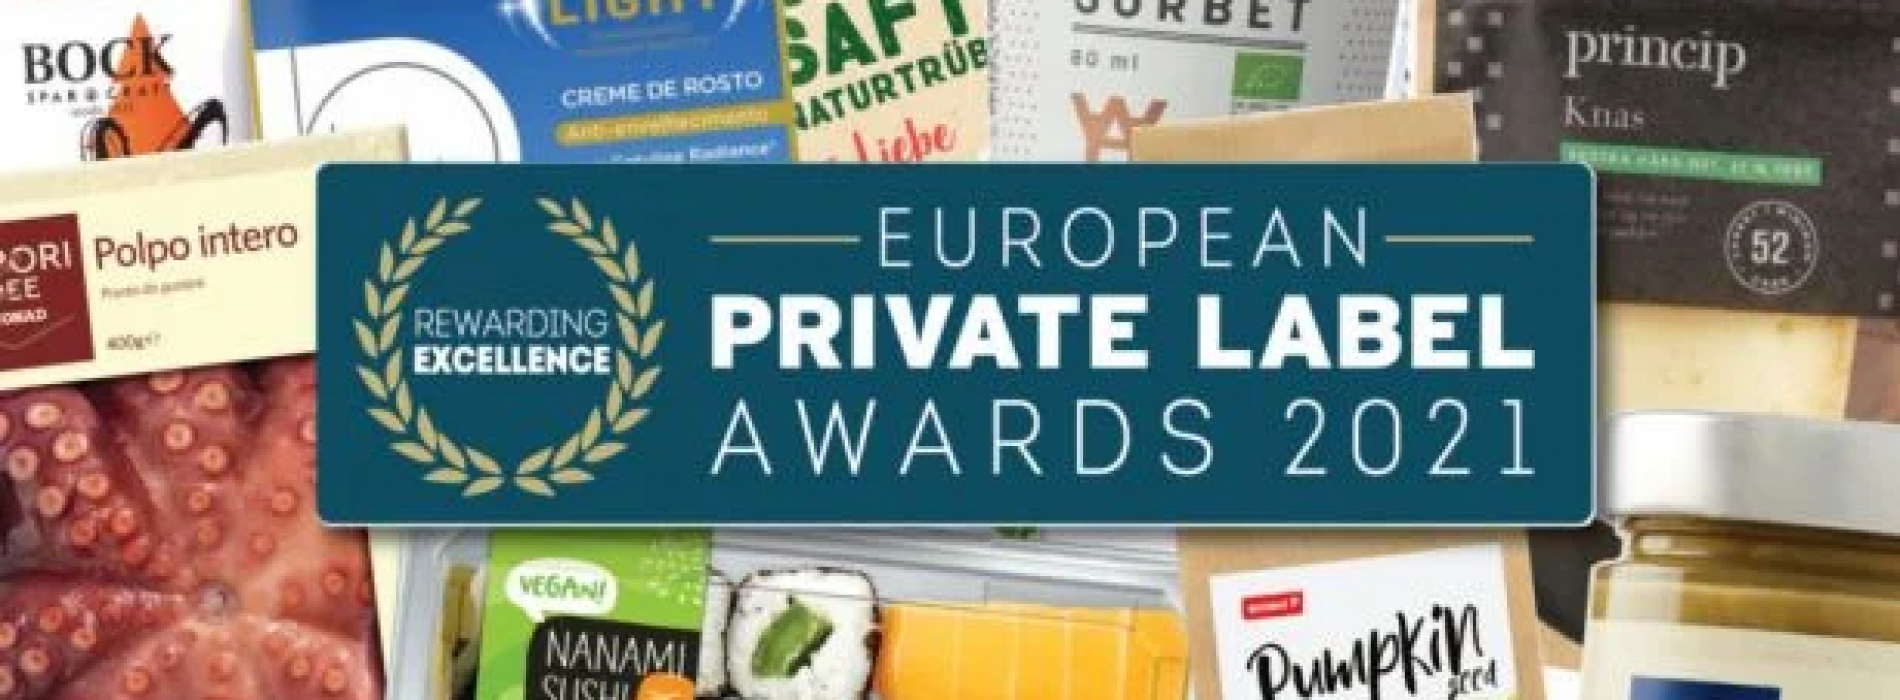 European Private Label Awards 2021 – Vencedores anunciados!